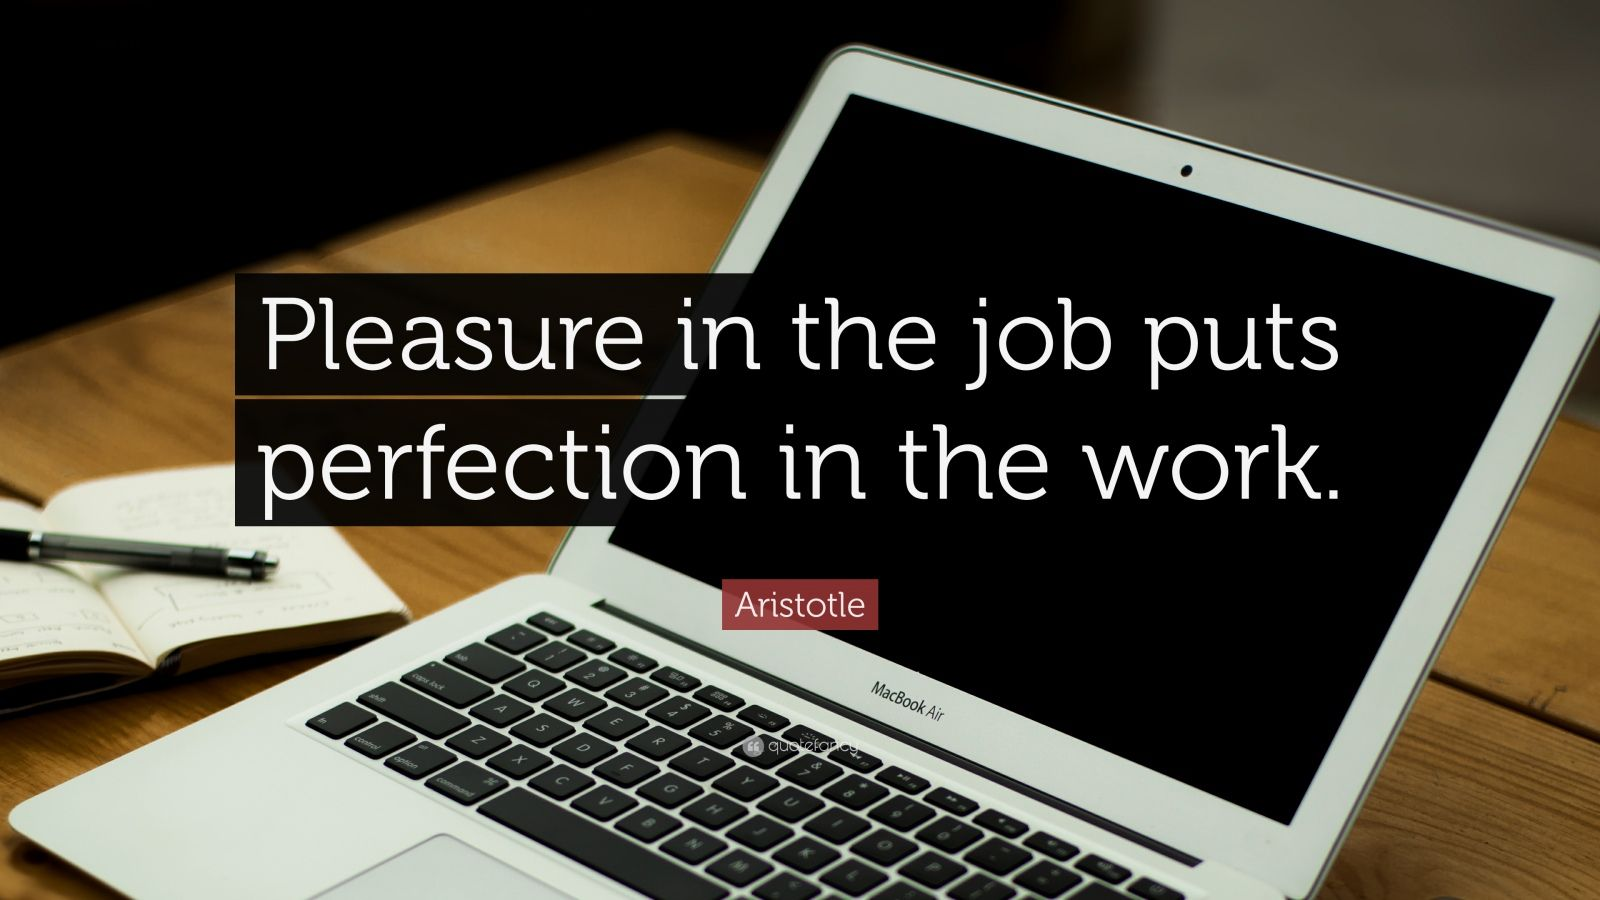 pleasure in the job puts perfection in the work essay In my 12 years in ascendas, i had the pleasure of working with over 900 colleagues and partners across 10 countries, developing business parks across asia that serve the needs of local enterprises and mncs that provide employment to thousands in each location.